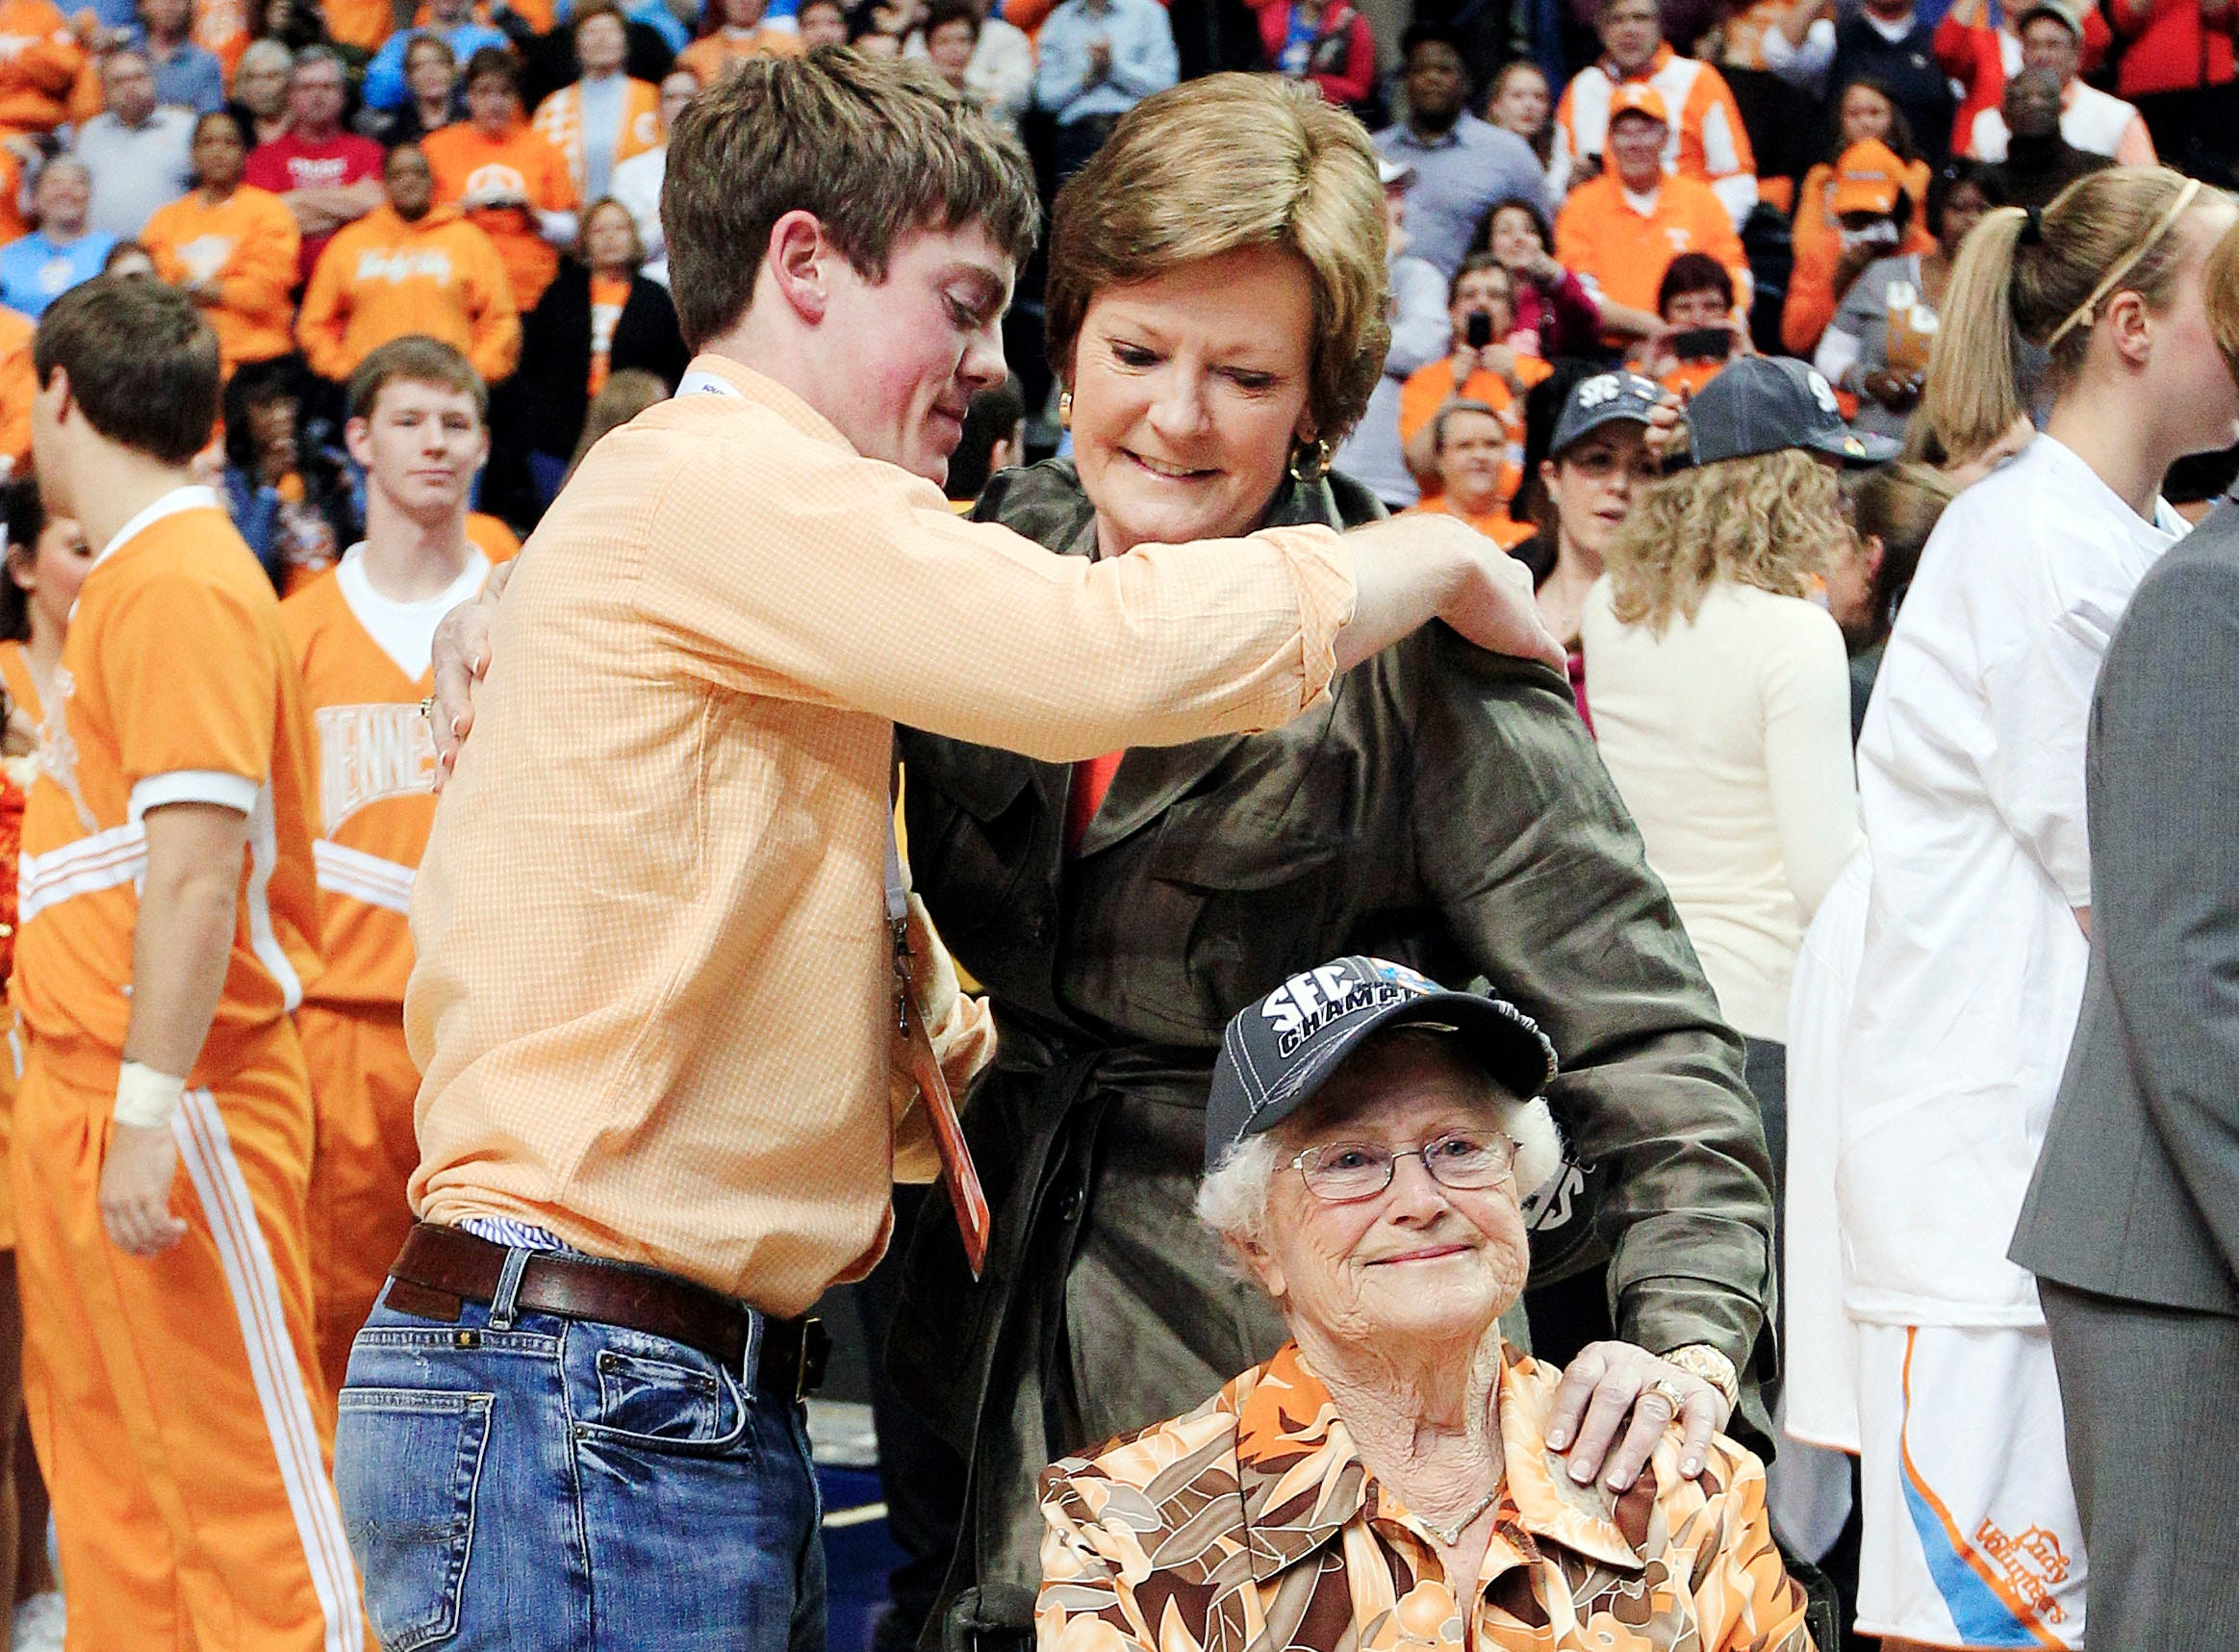 Pat Summitt embraces her son, Tyler, as she brings her mother, Hazel Head, onto the court after Tennessee defeated LSU 70-58 to win the the women's SEC championship on March 4, 2012, in Nashville.